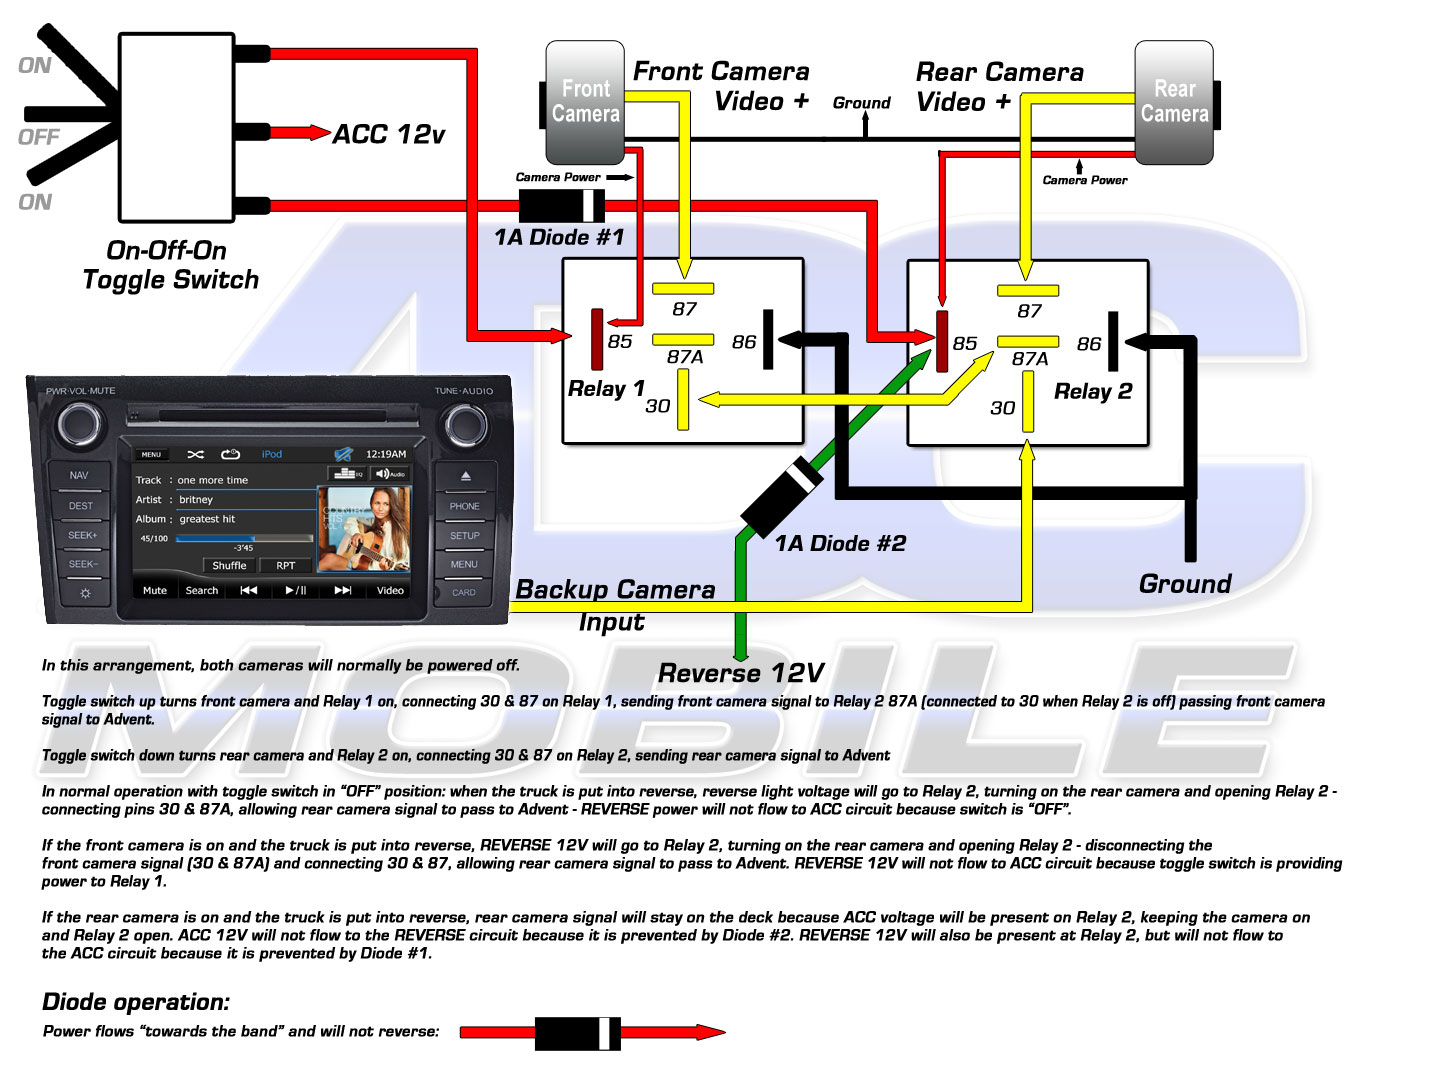 2012 toyota tundra backup camera wiring diagram Download-car Backup Camera Wiring Diagram Look Rightcamera Tundra Front Rear Relays1 How To Relocate Trailer 2-o